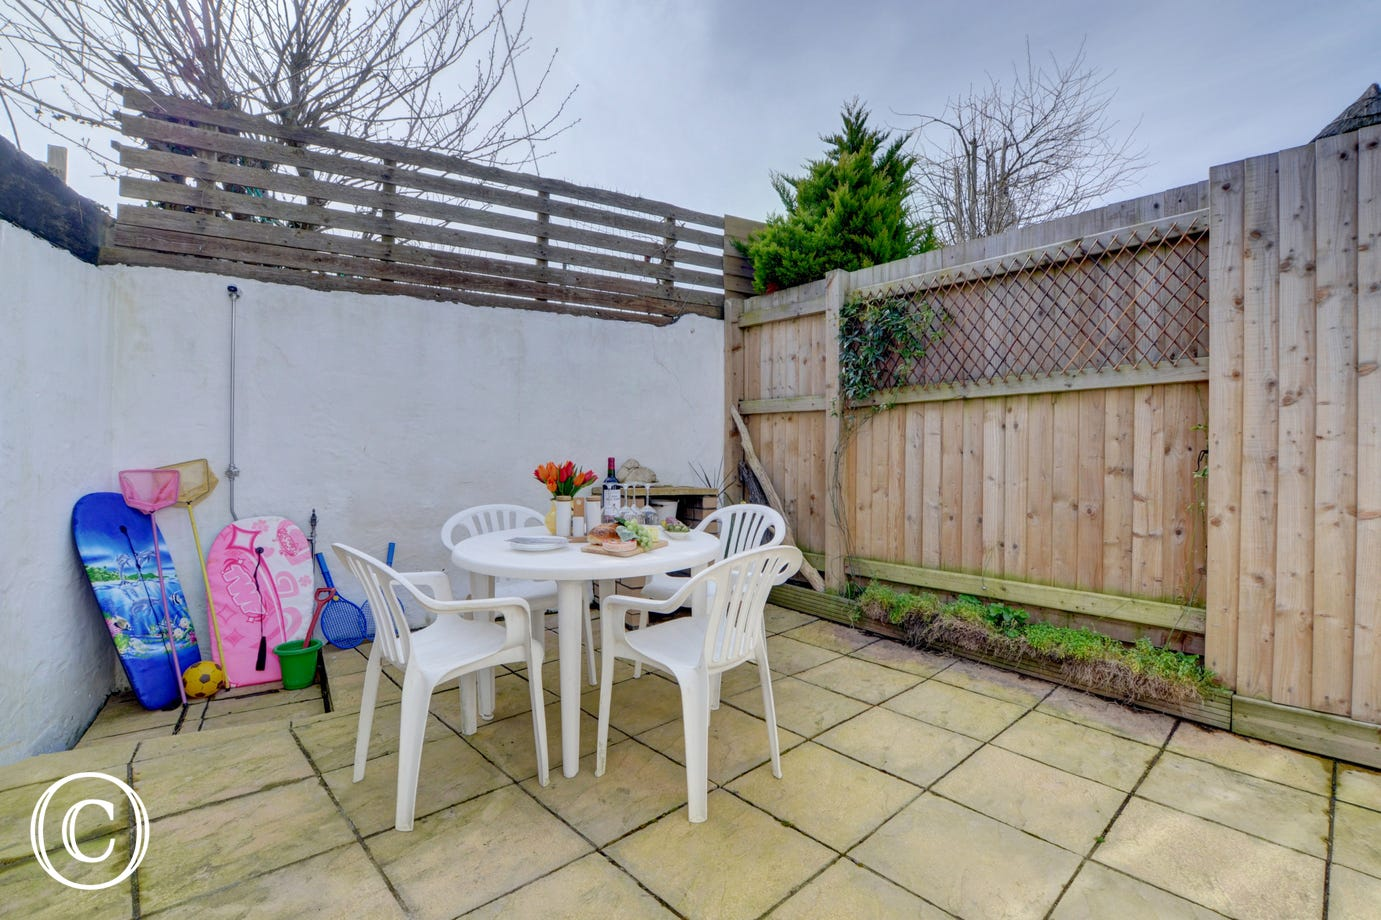 You own private patio area which is enclosed and has an outdoor shower